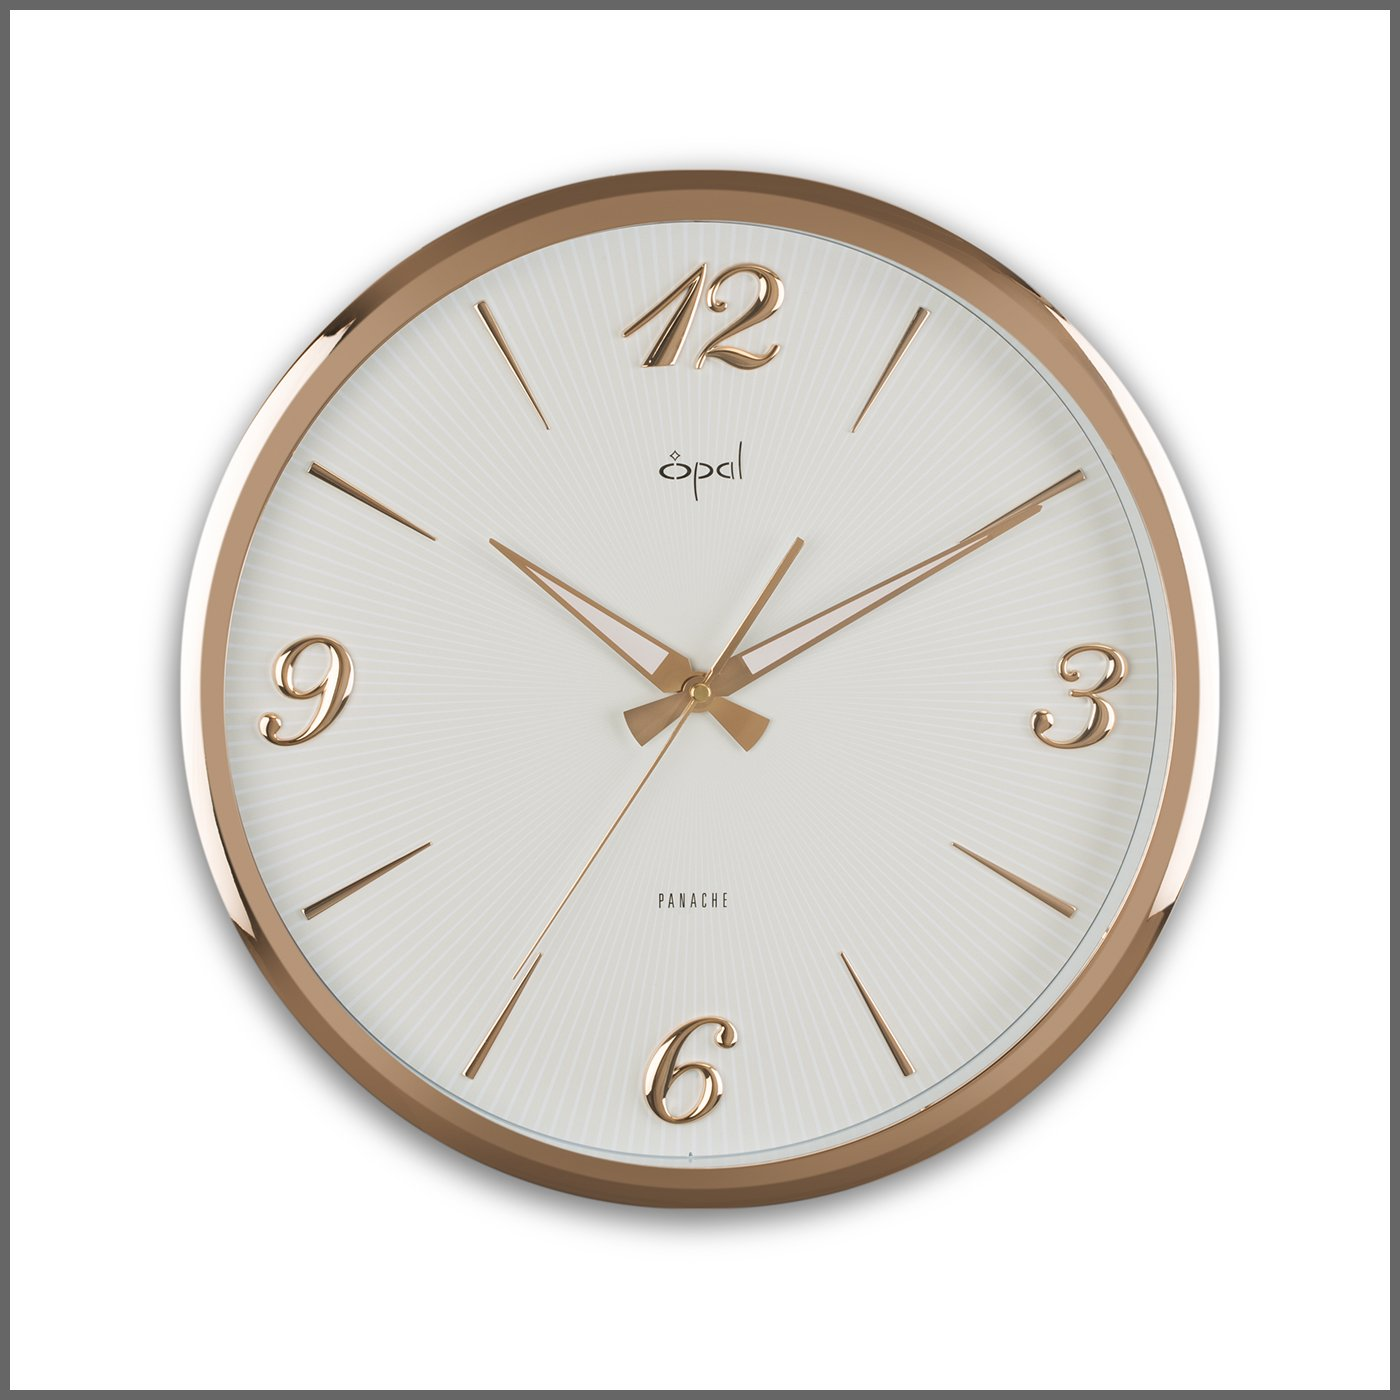 Buy opal designer abs wall clock 56 cm x 56 cm x 11cm rose gold buy opal designer abs wall clock 56 cm x 56 cm x 11cm rose gold online at low prices in india amazon amipublicfo Choice Image